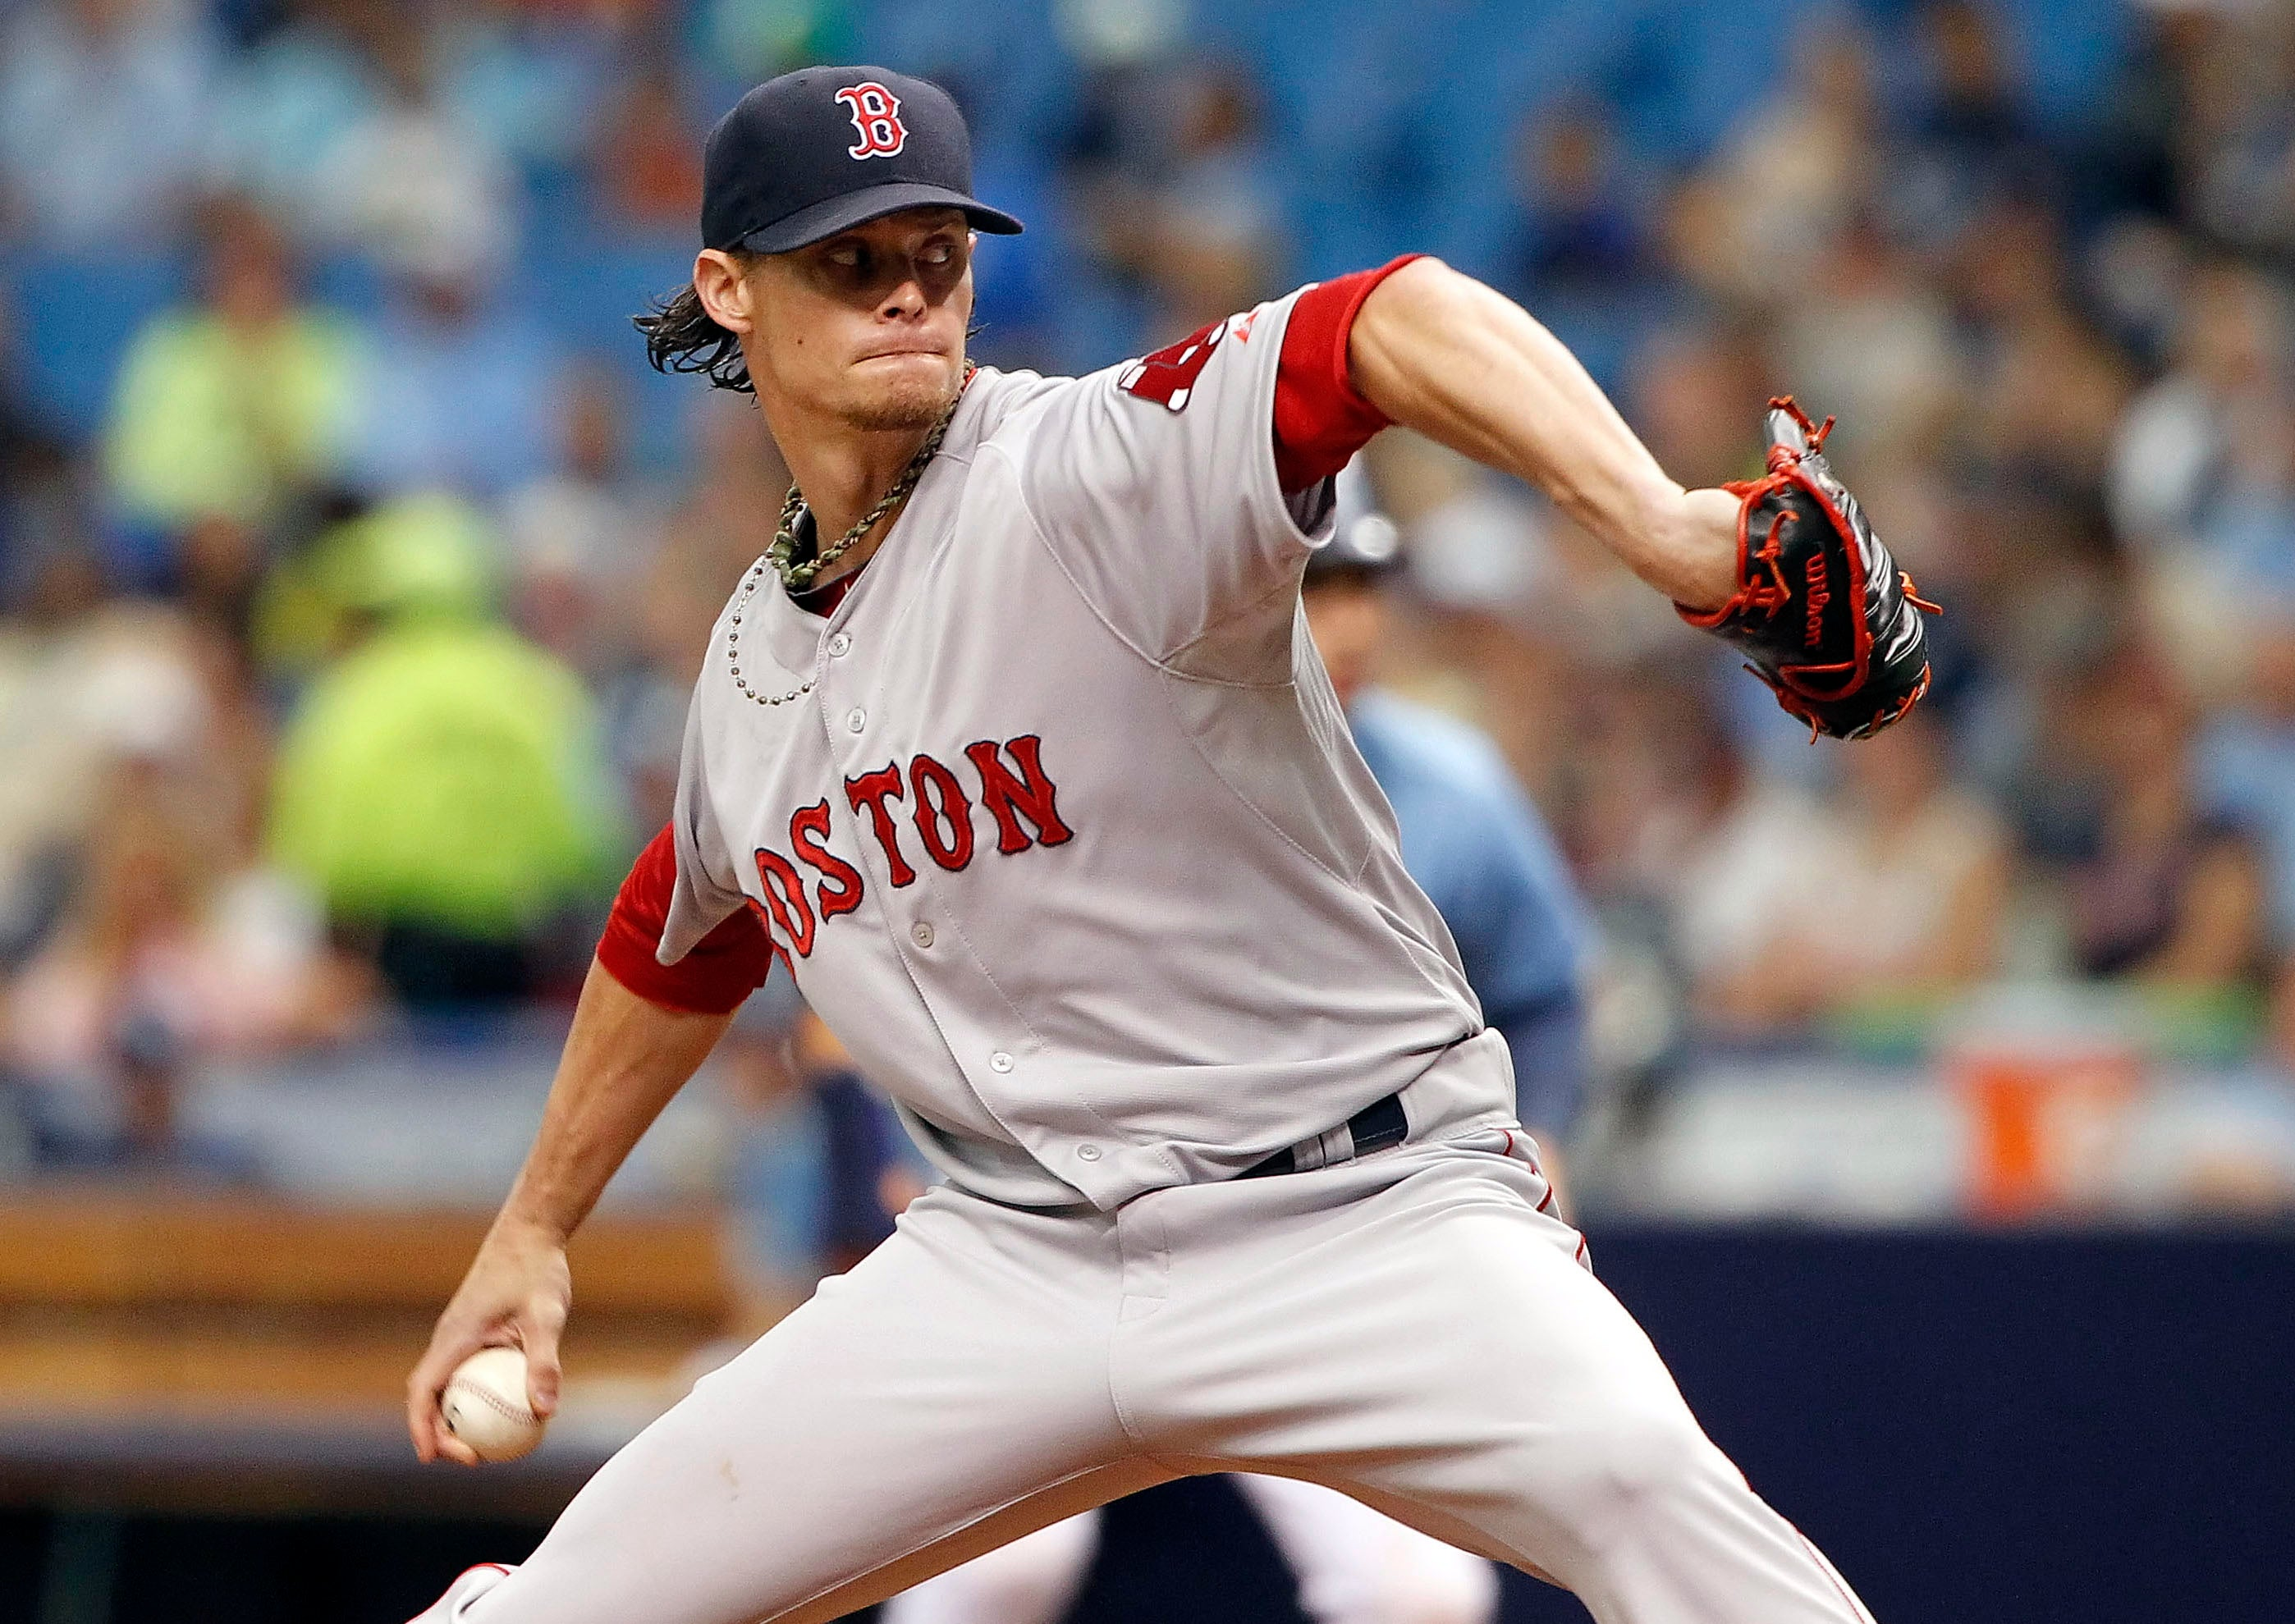 2014-08-31T183039Z_298387369_NOCID_RTRMADP_3_MLB-BOSTON-RED-SOX-AT-TAMPA-BAY-RAYS.jpg